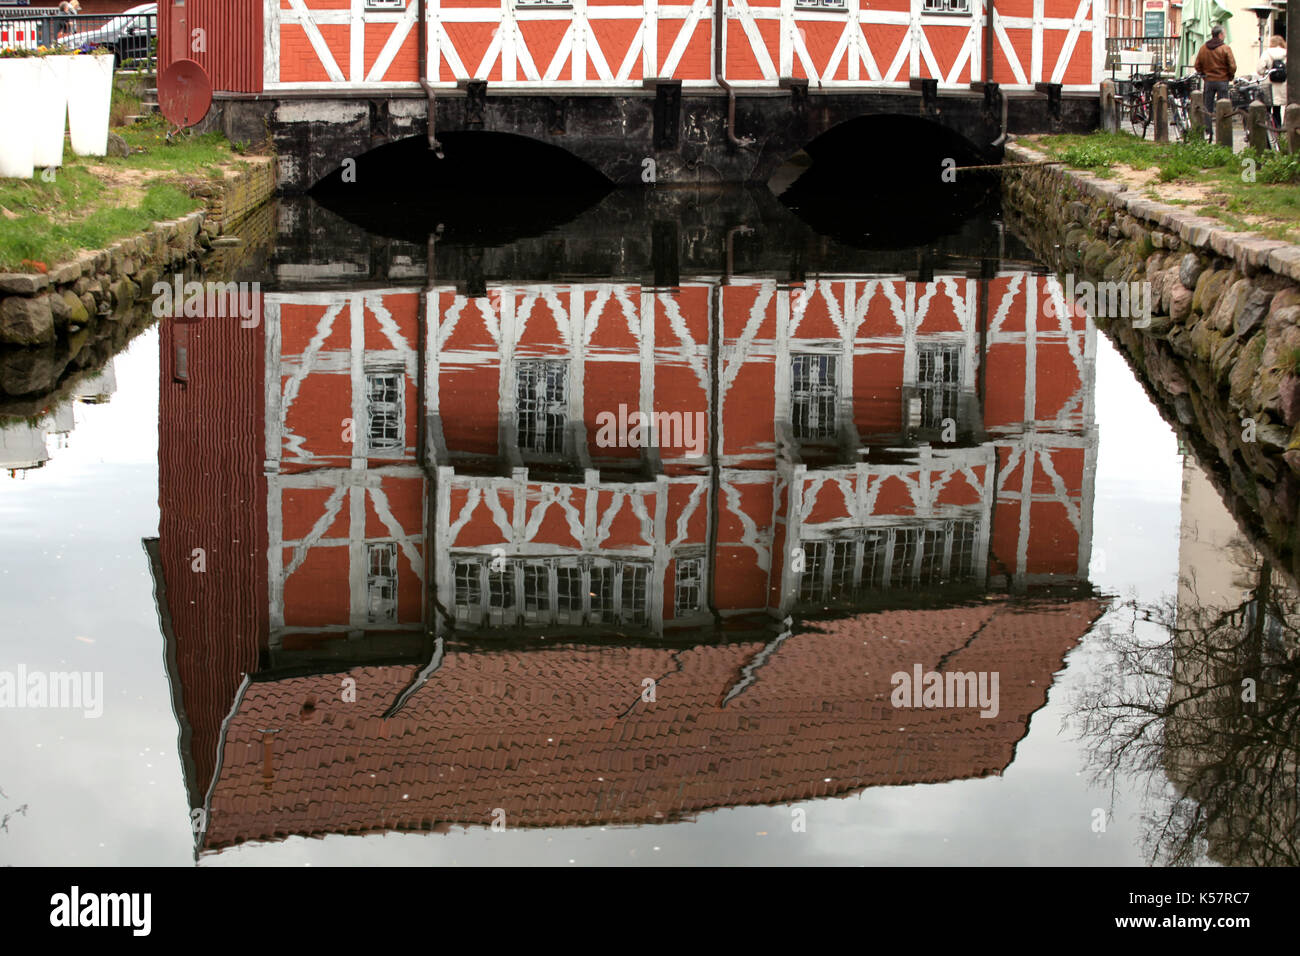 Reflection of the old town symbol of Wismar. - Stock Image